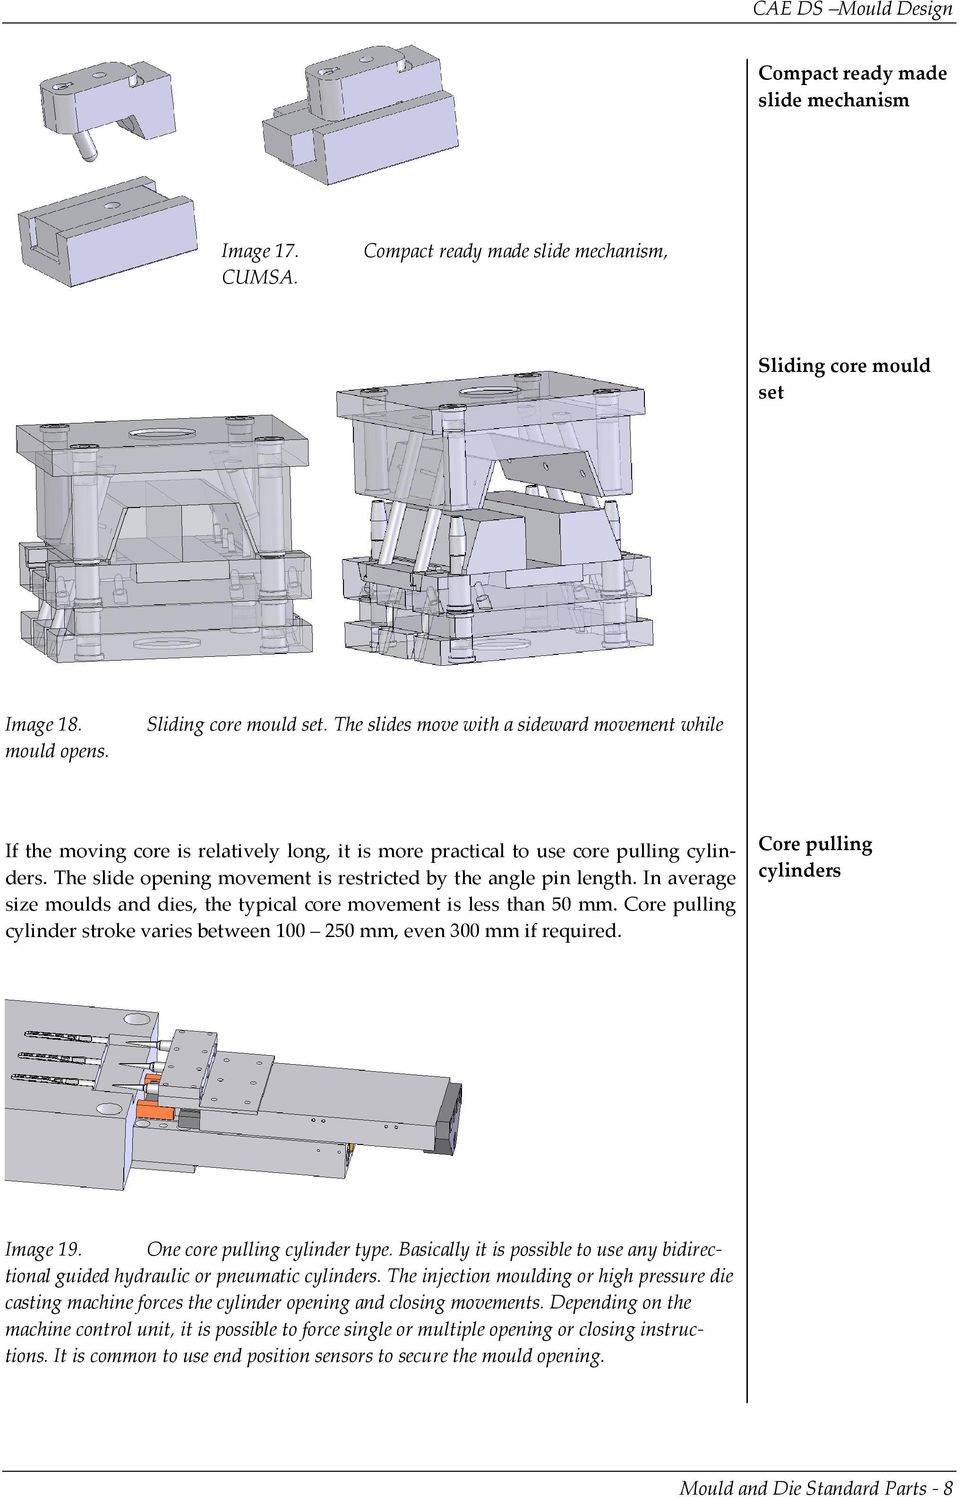 Mould and Die Standard Parts - PDF